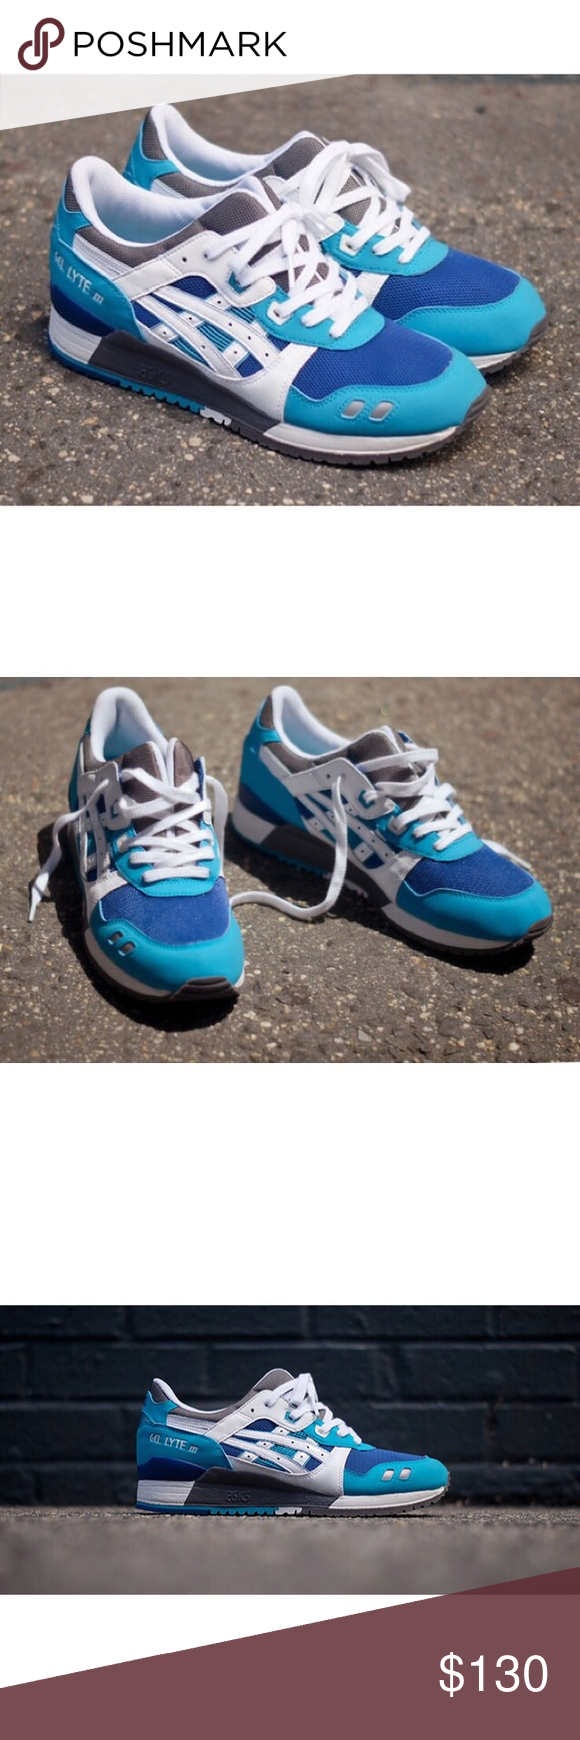 ASICS Kith Gel Lyte III ASICS Gel Lyte III Blue - White - Grey originals from Ronnie Feig and KITH. Great condition Asics Shoes Sneakers #feig